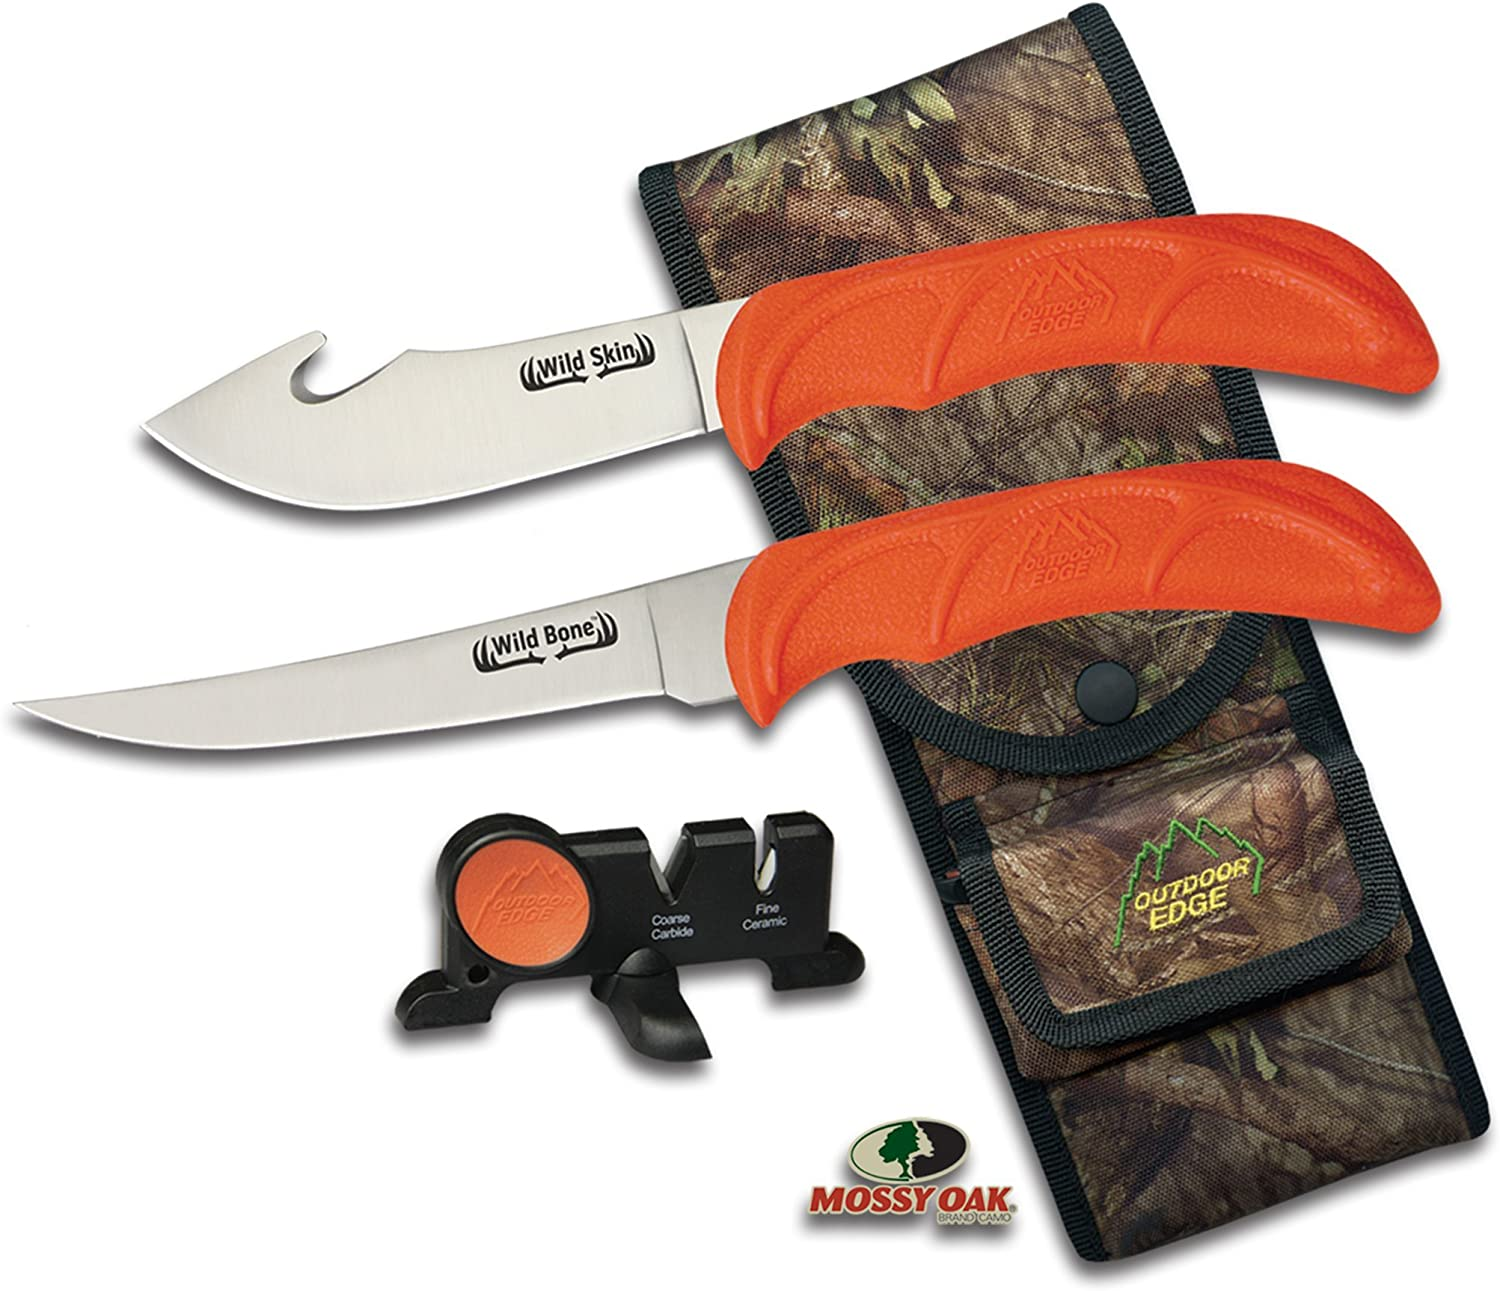 Outdoor Edge WildBone, 4-Piece Field to Freezer Hunting & Game Processing Knife Set with Gut-Hook Skinner, Boning/Fillet Knife, Carbine/Ceramic Sharpener and Mossy Oak Camo Belt Scabbard